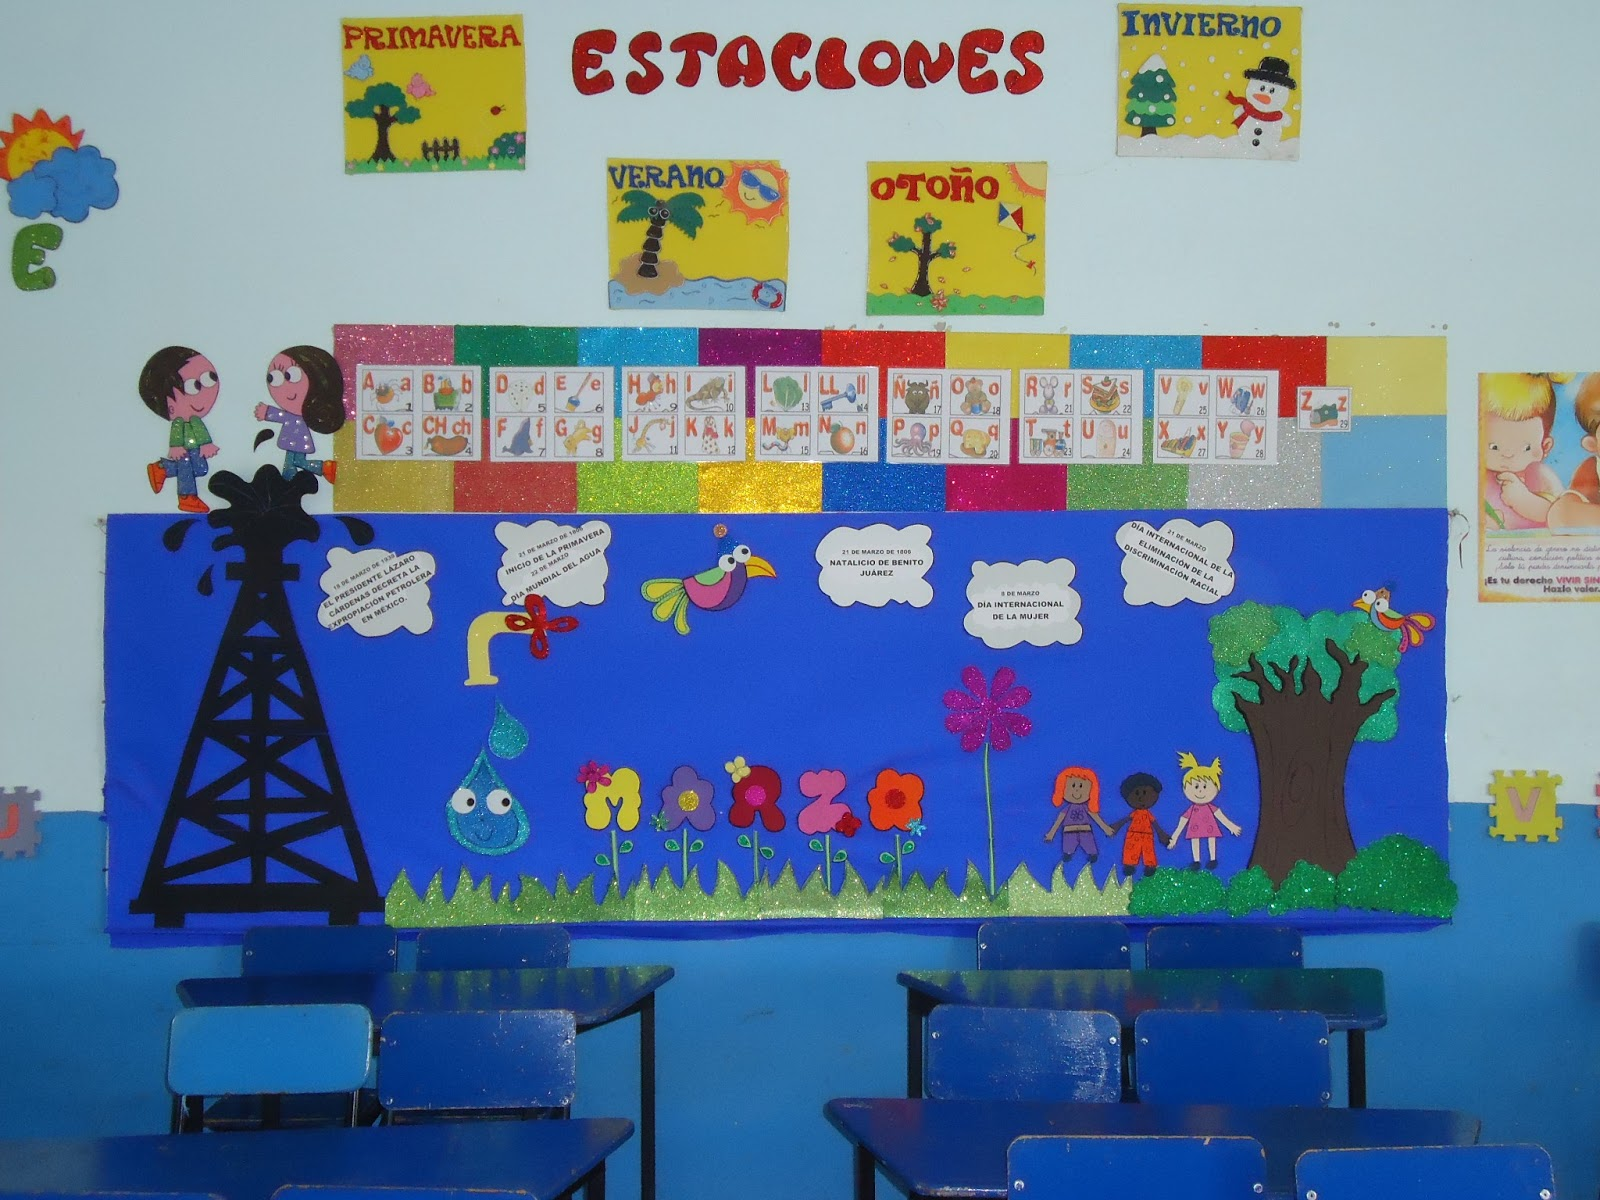 Periodico mural 17 imagenes educativas for Como decorar un mural